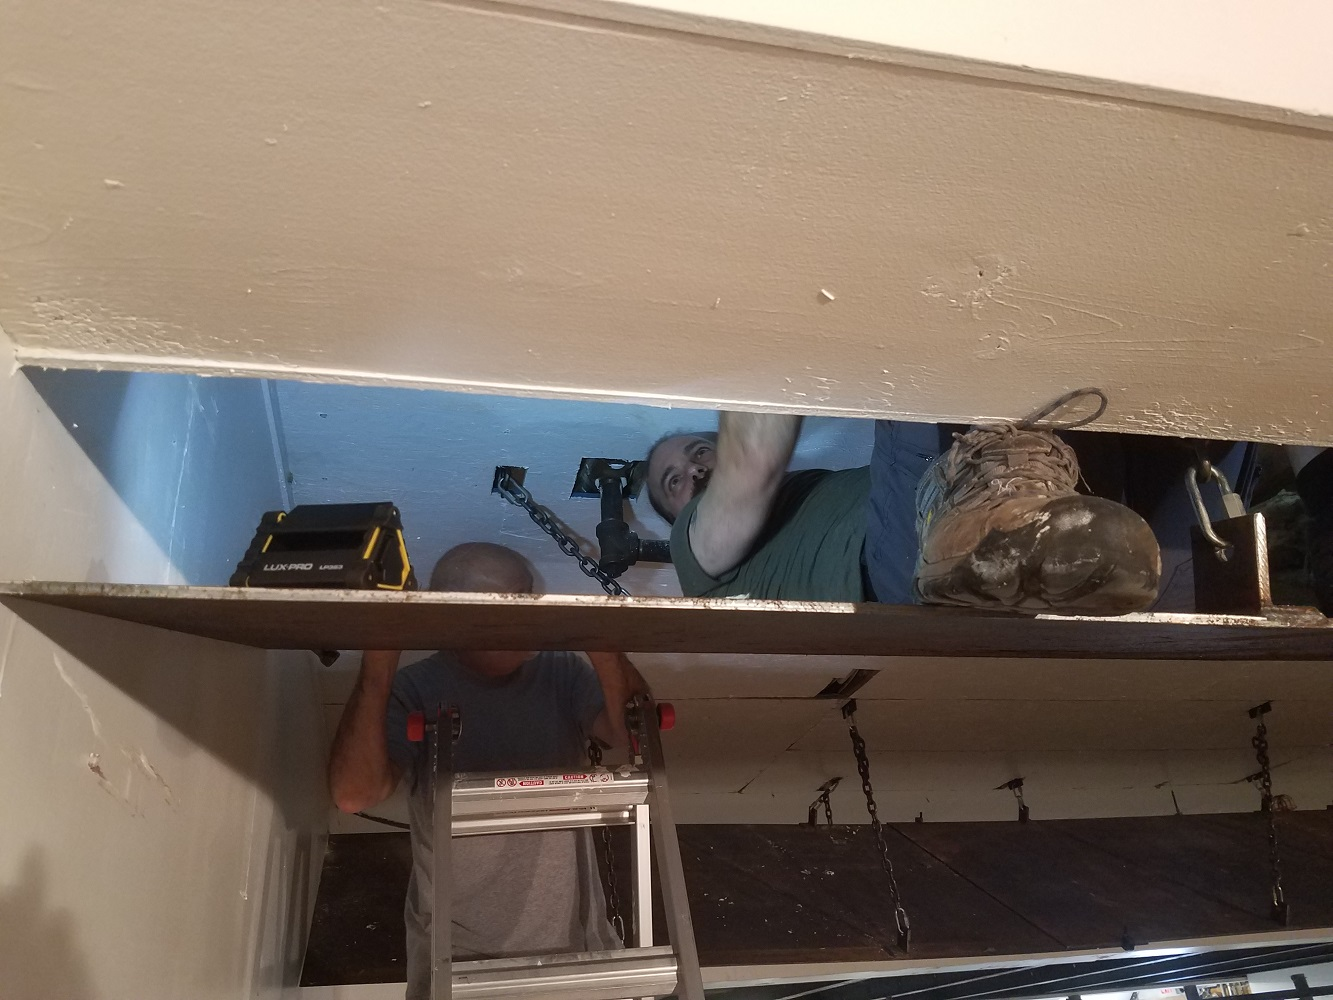 Richard spent about 2.5 hours in here reattaching the ceiling while Bob, Dean, and Dale cut and supported the effort from outside. Many thanks Richard for the outstanding effort.